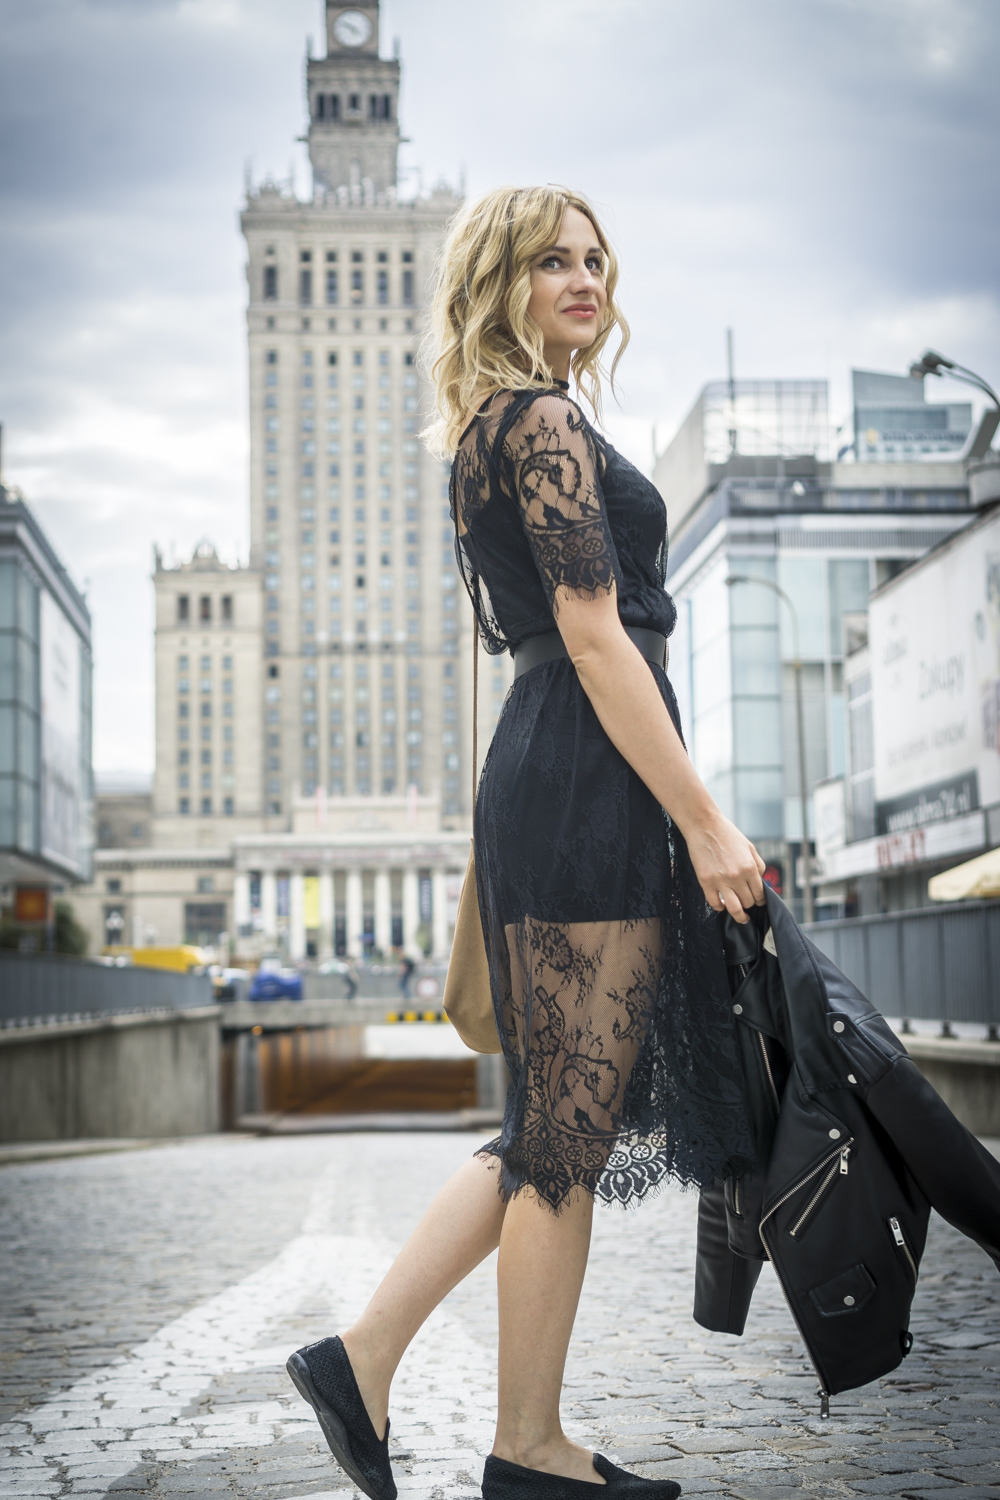 black lace dress casual chic street style fashion blonde tumblr girl look it girl lookbook ootd vogue